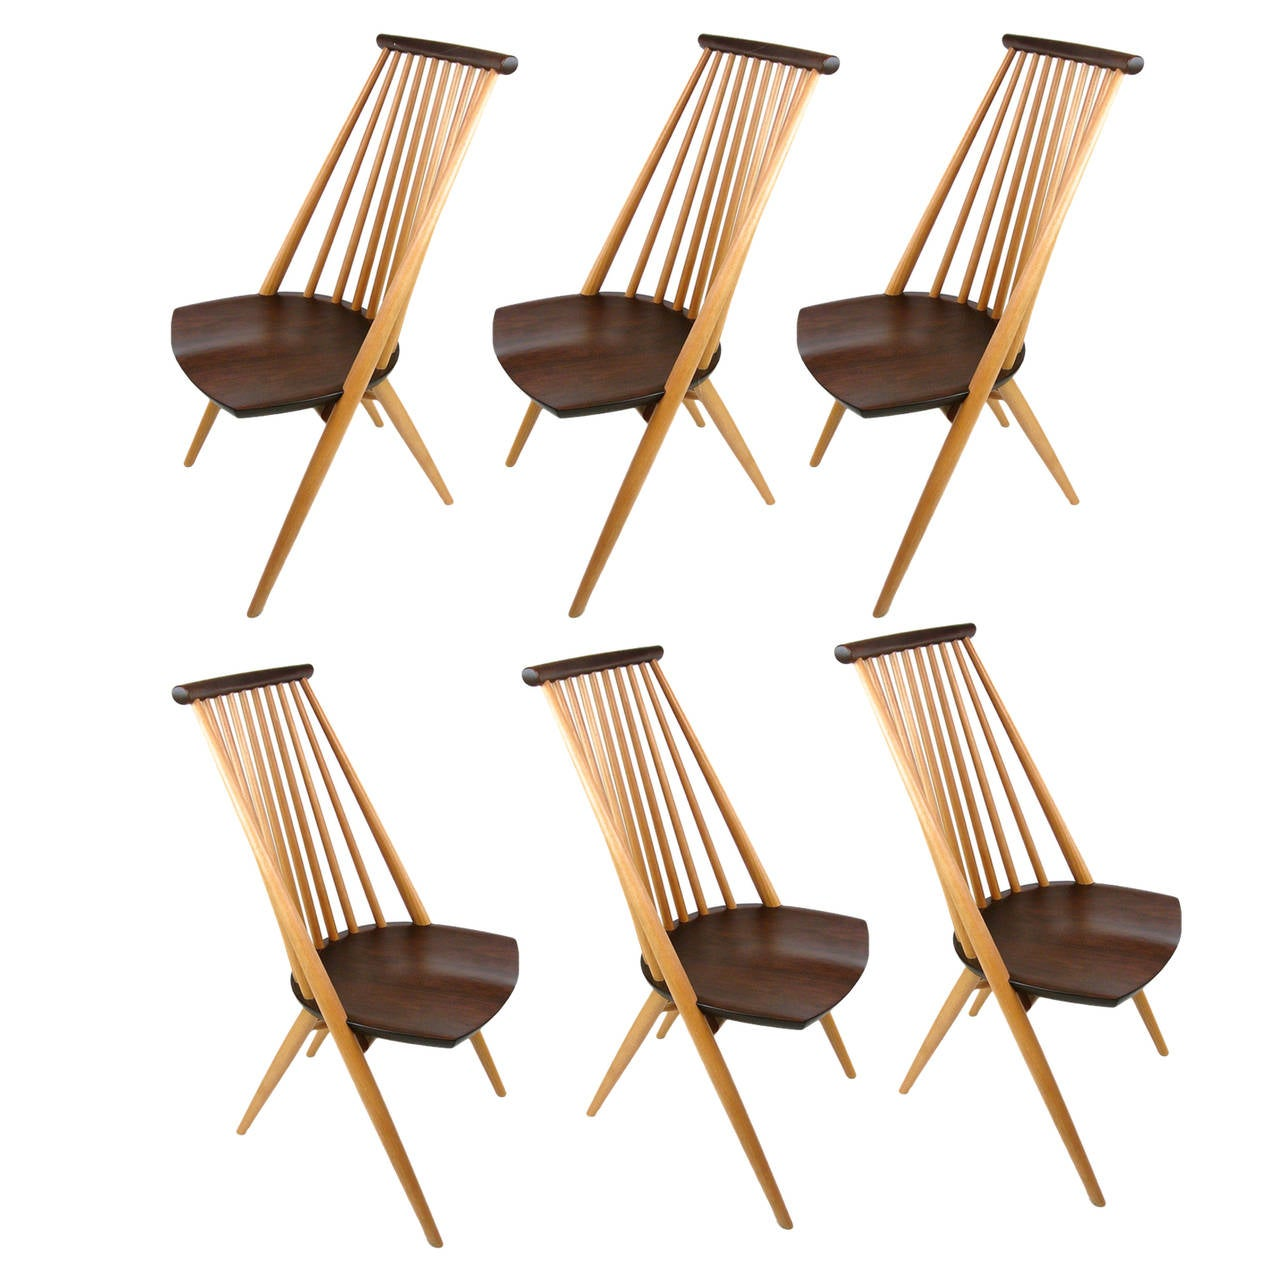 Stunning Handcrafted Tateishi Shoiji Dining Chairs In Walnut And Oak At 1stdibs